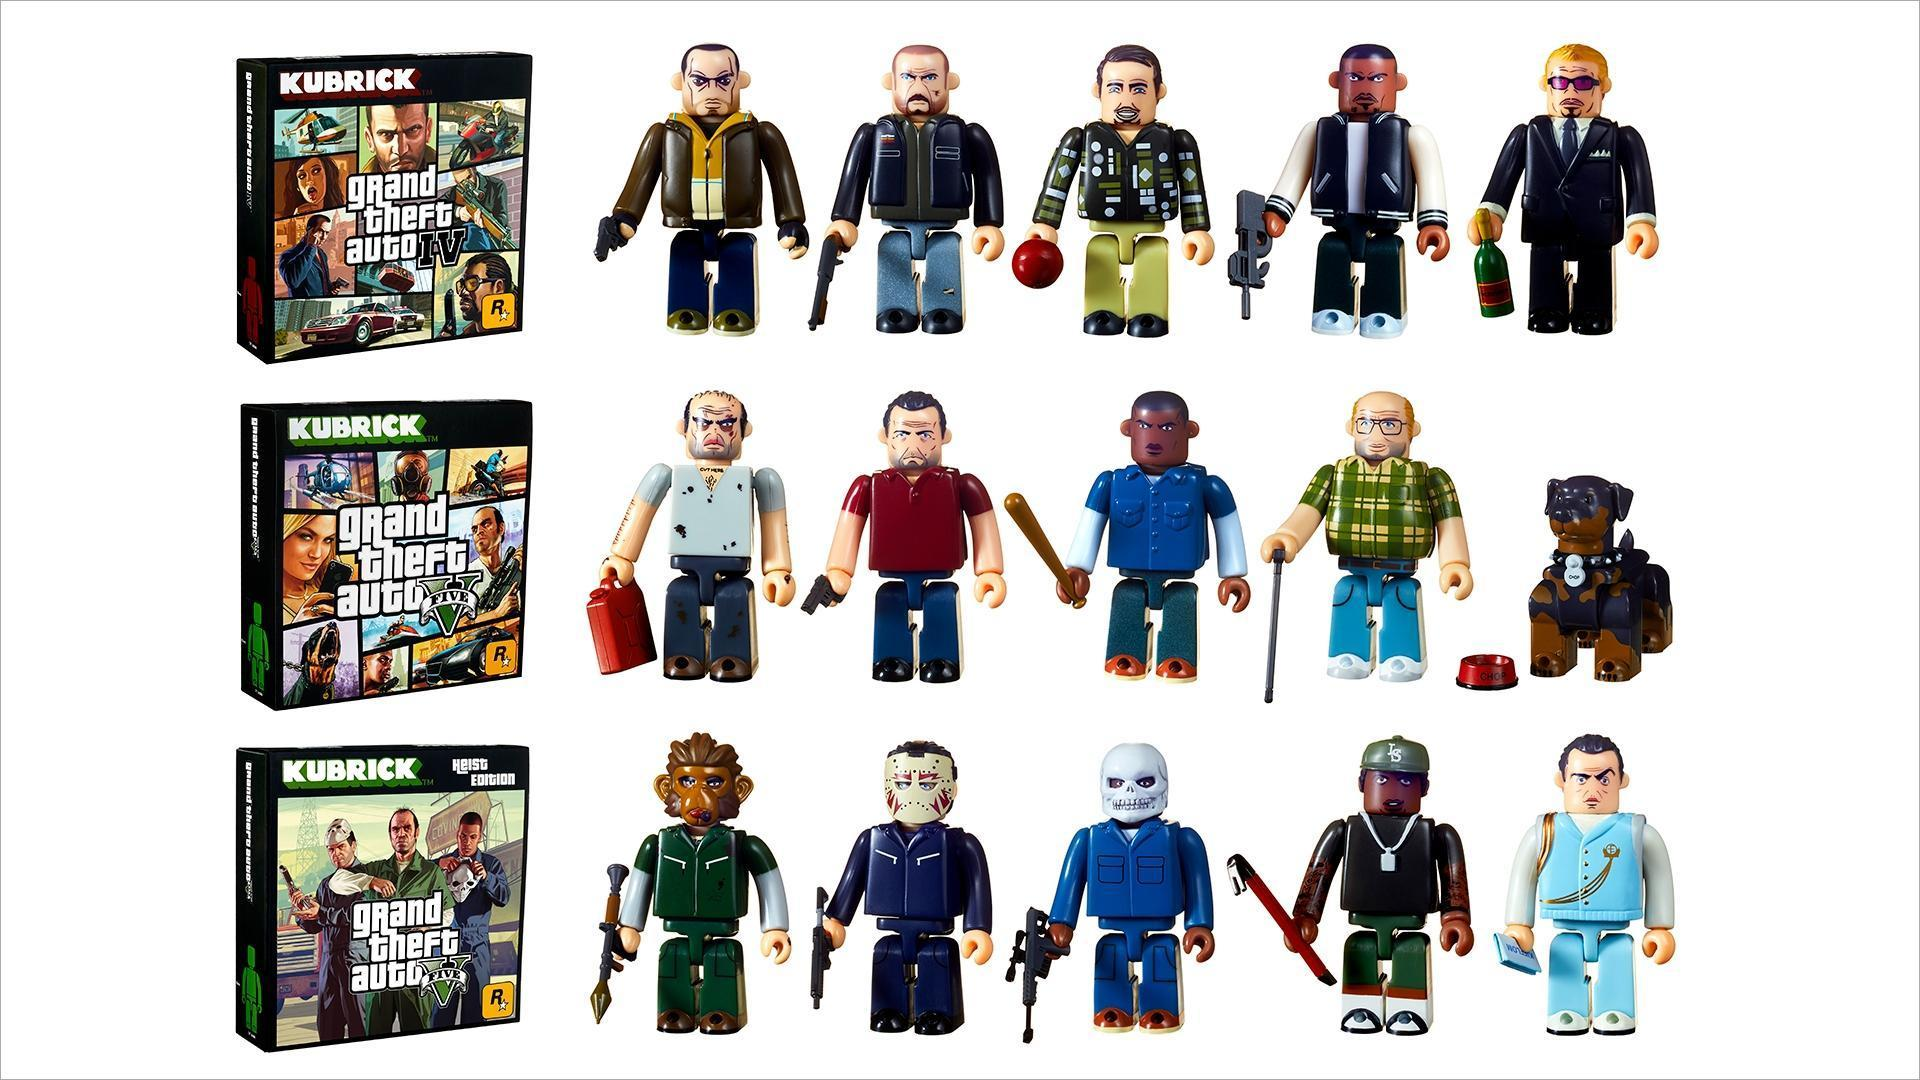 Grand Theft Auto Kubrick Sets Now Available!